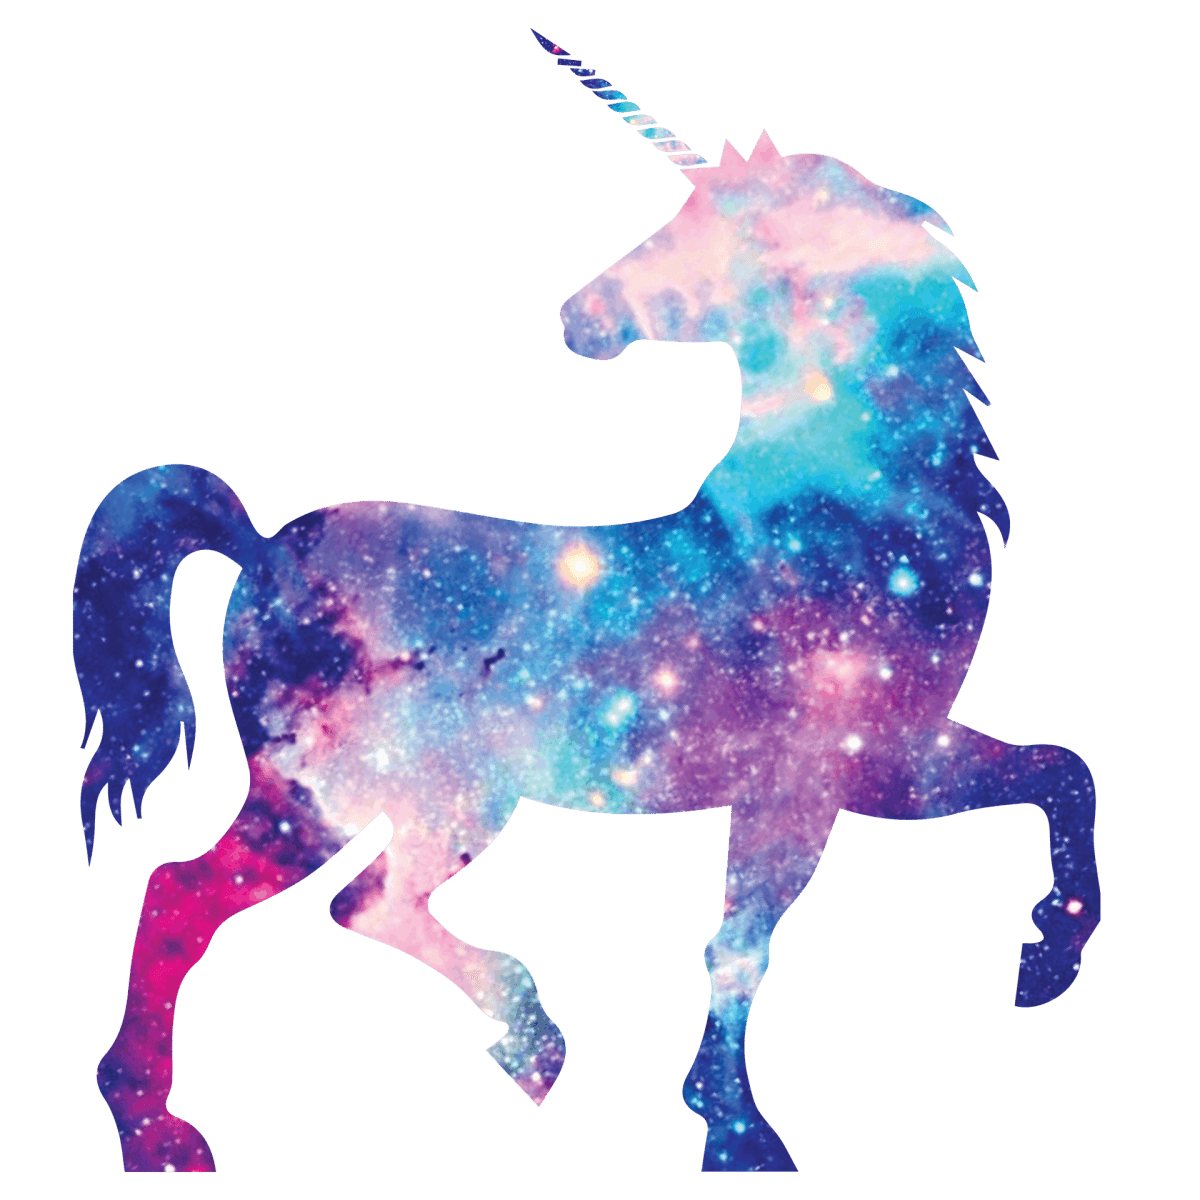 Cute Frappuccino Wallpaper How To Use The Unicorn Frappuccino Filter On Snapchat